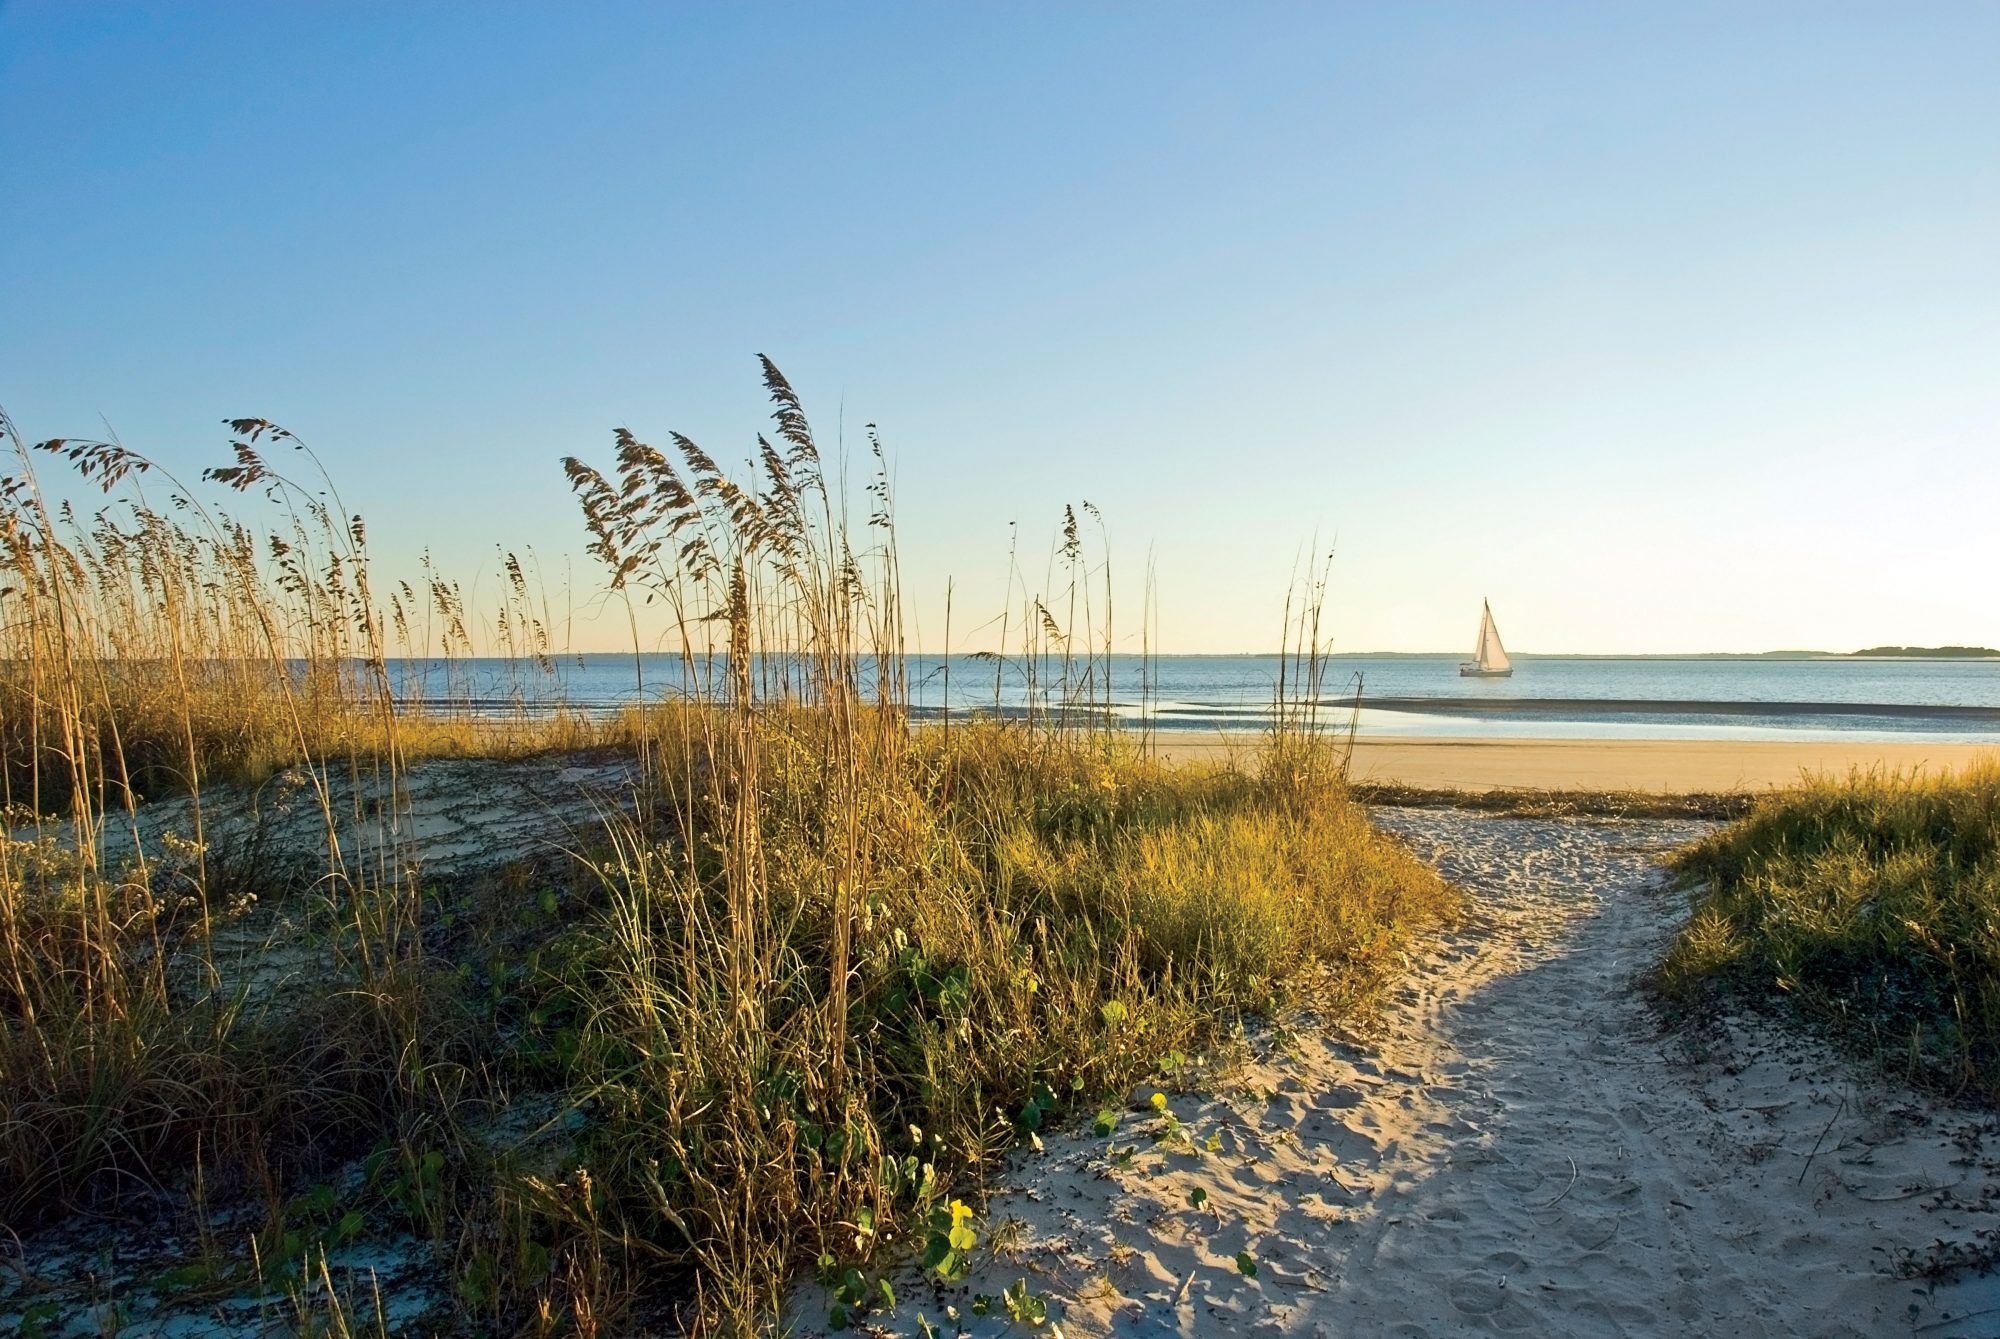 12. Hilton Head Island, South Carolina